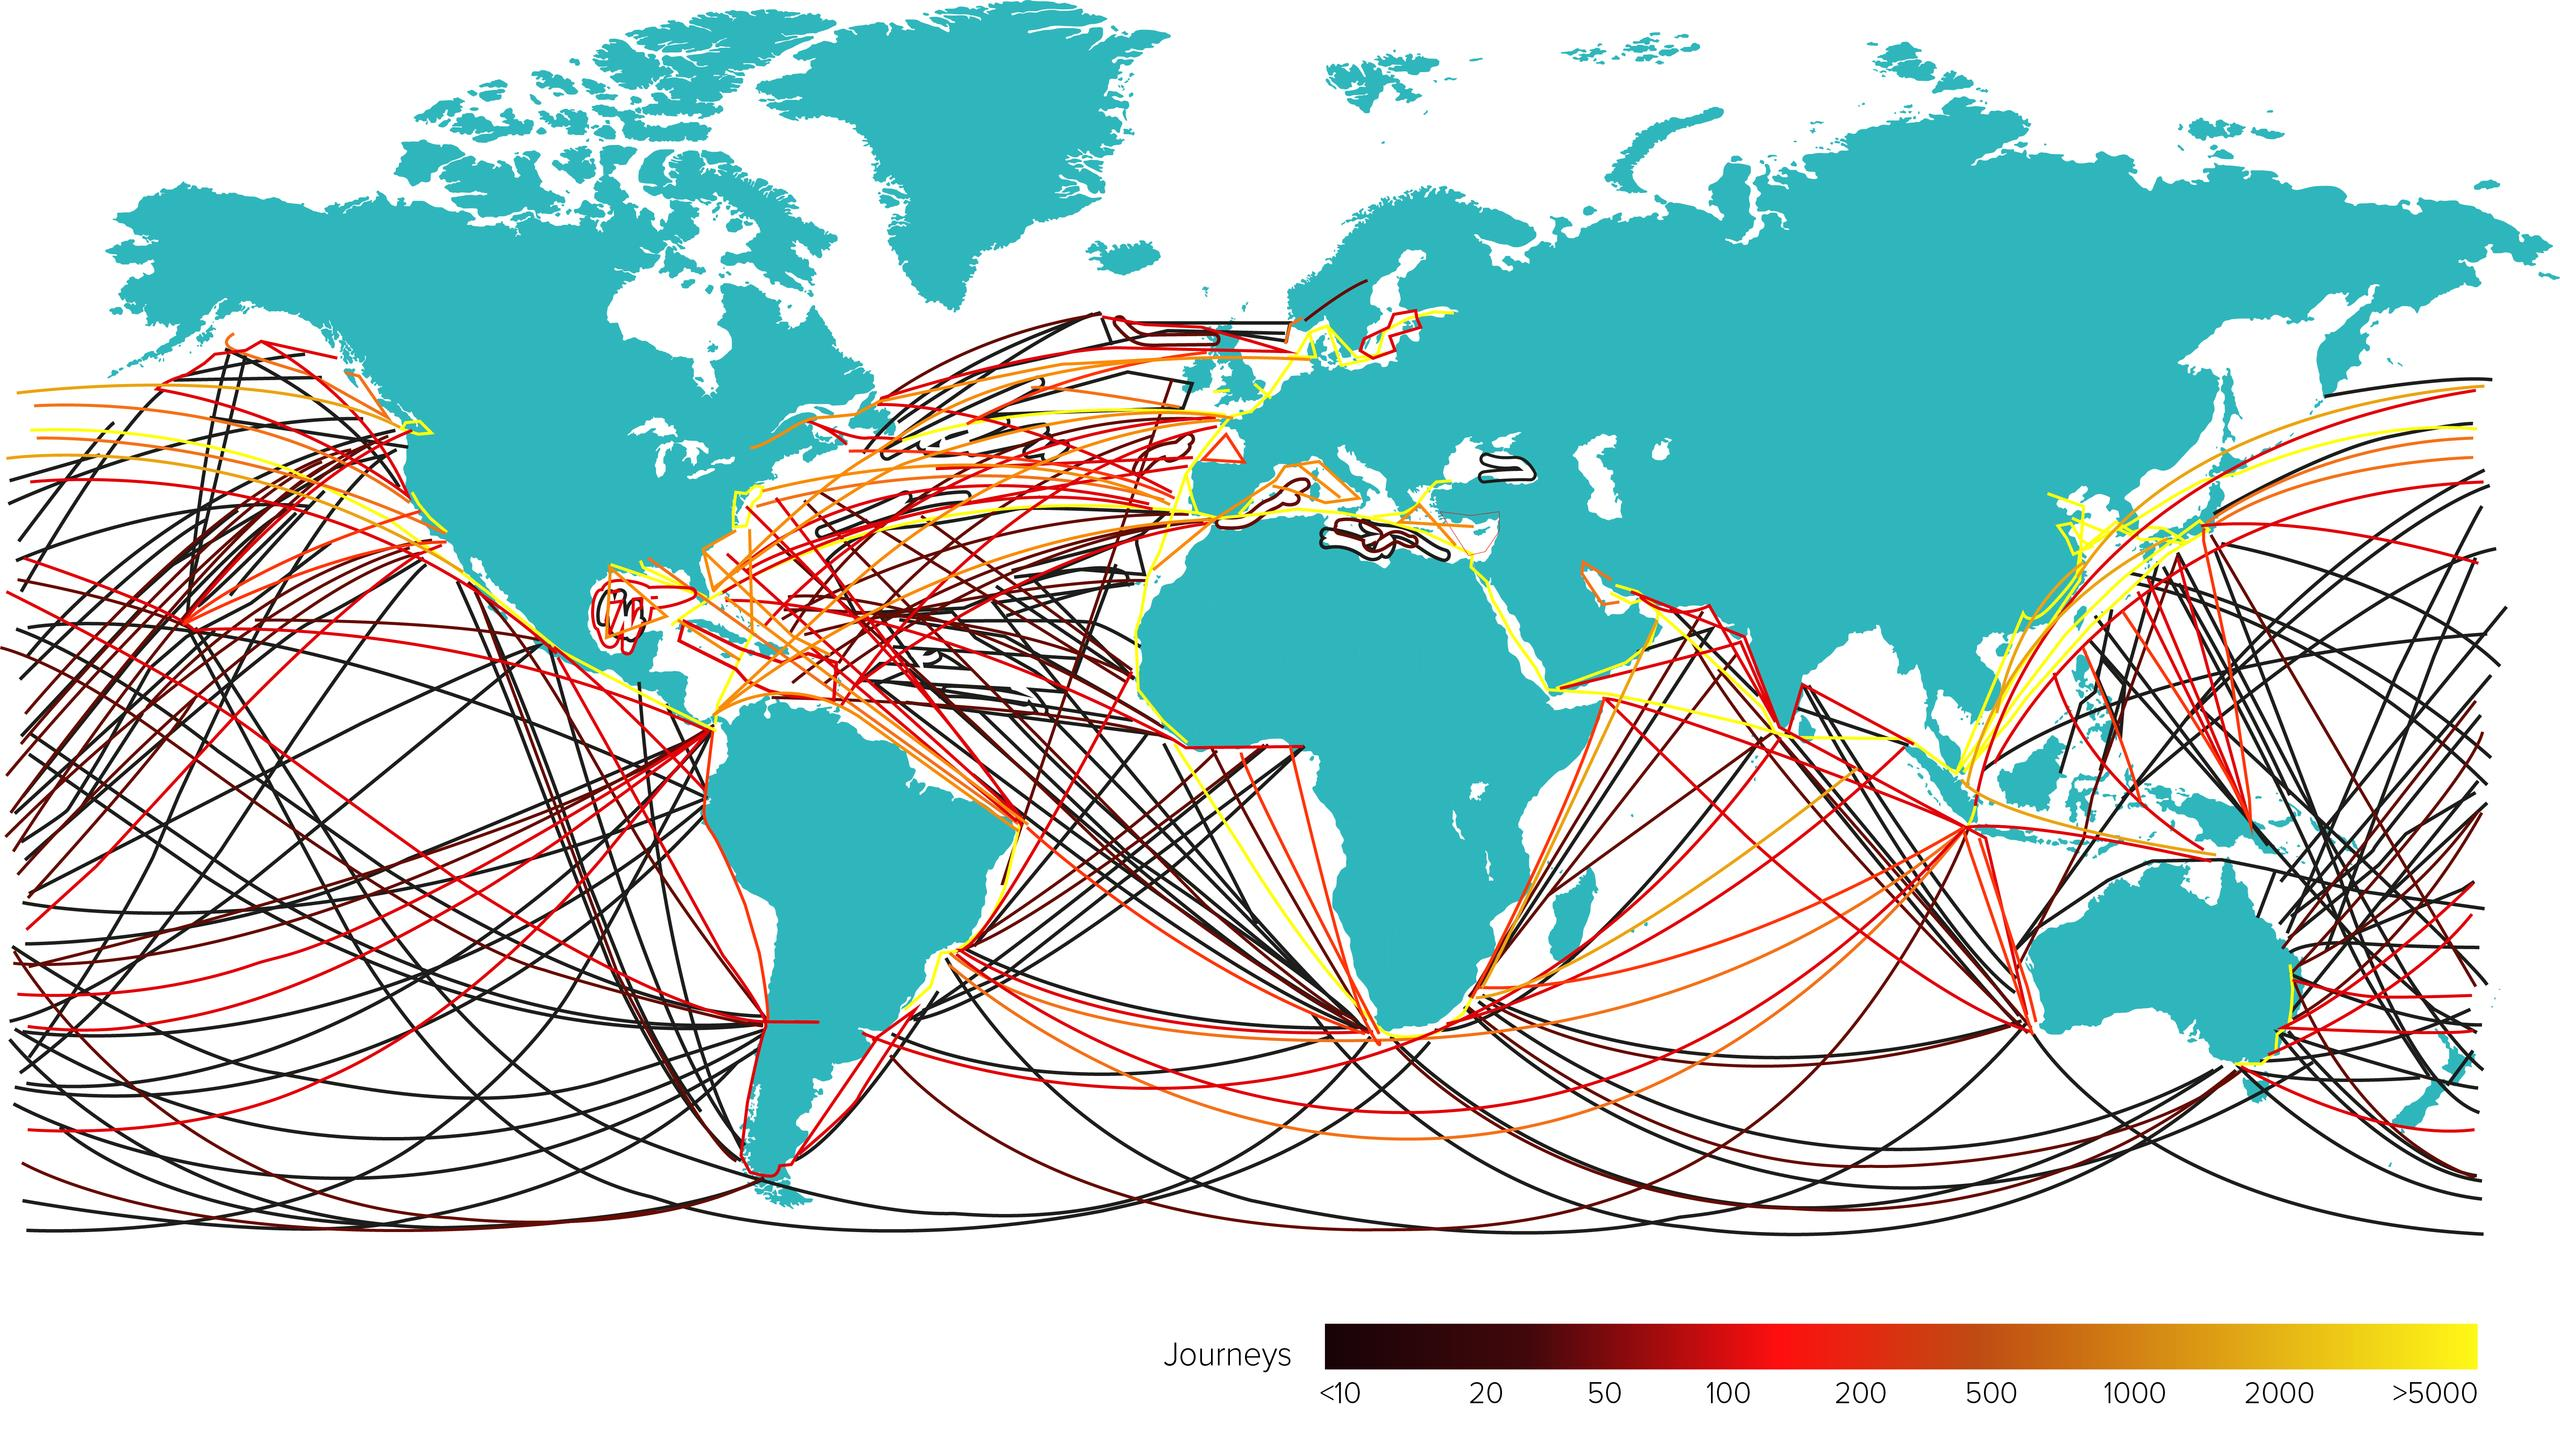 World map with shipping lines